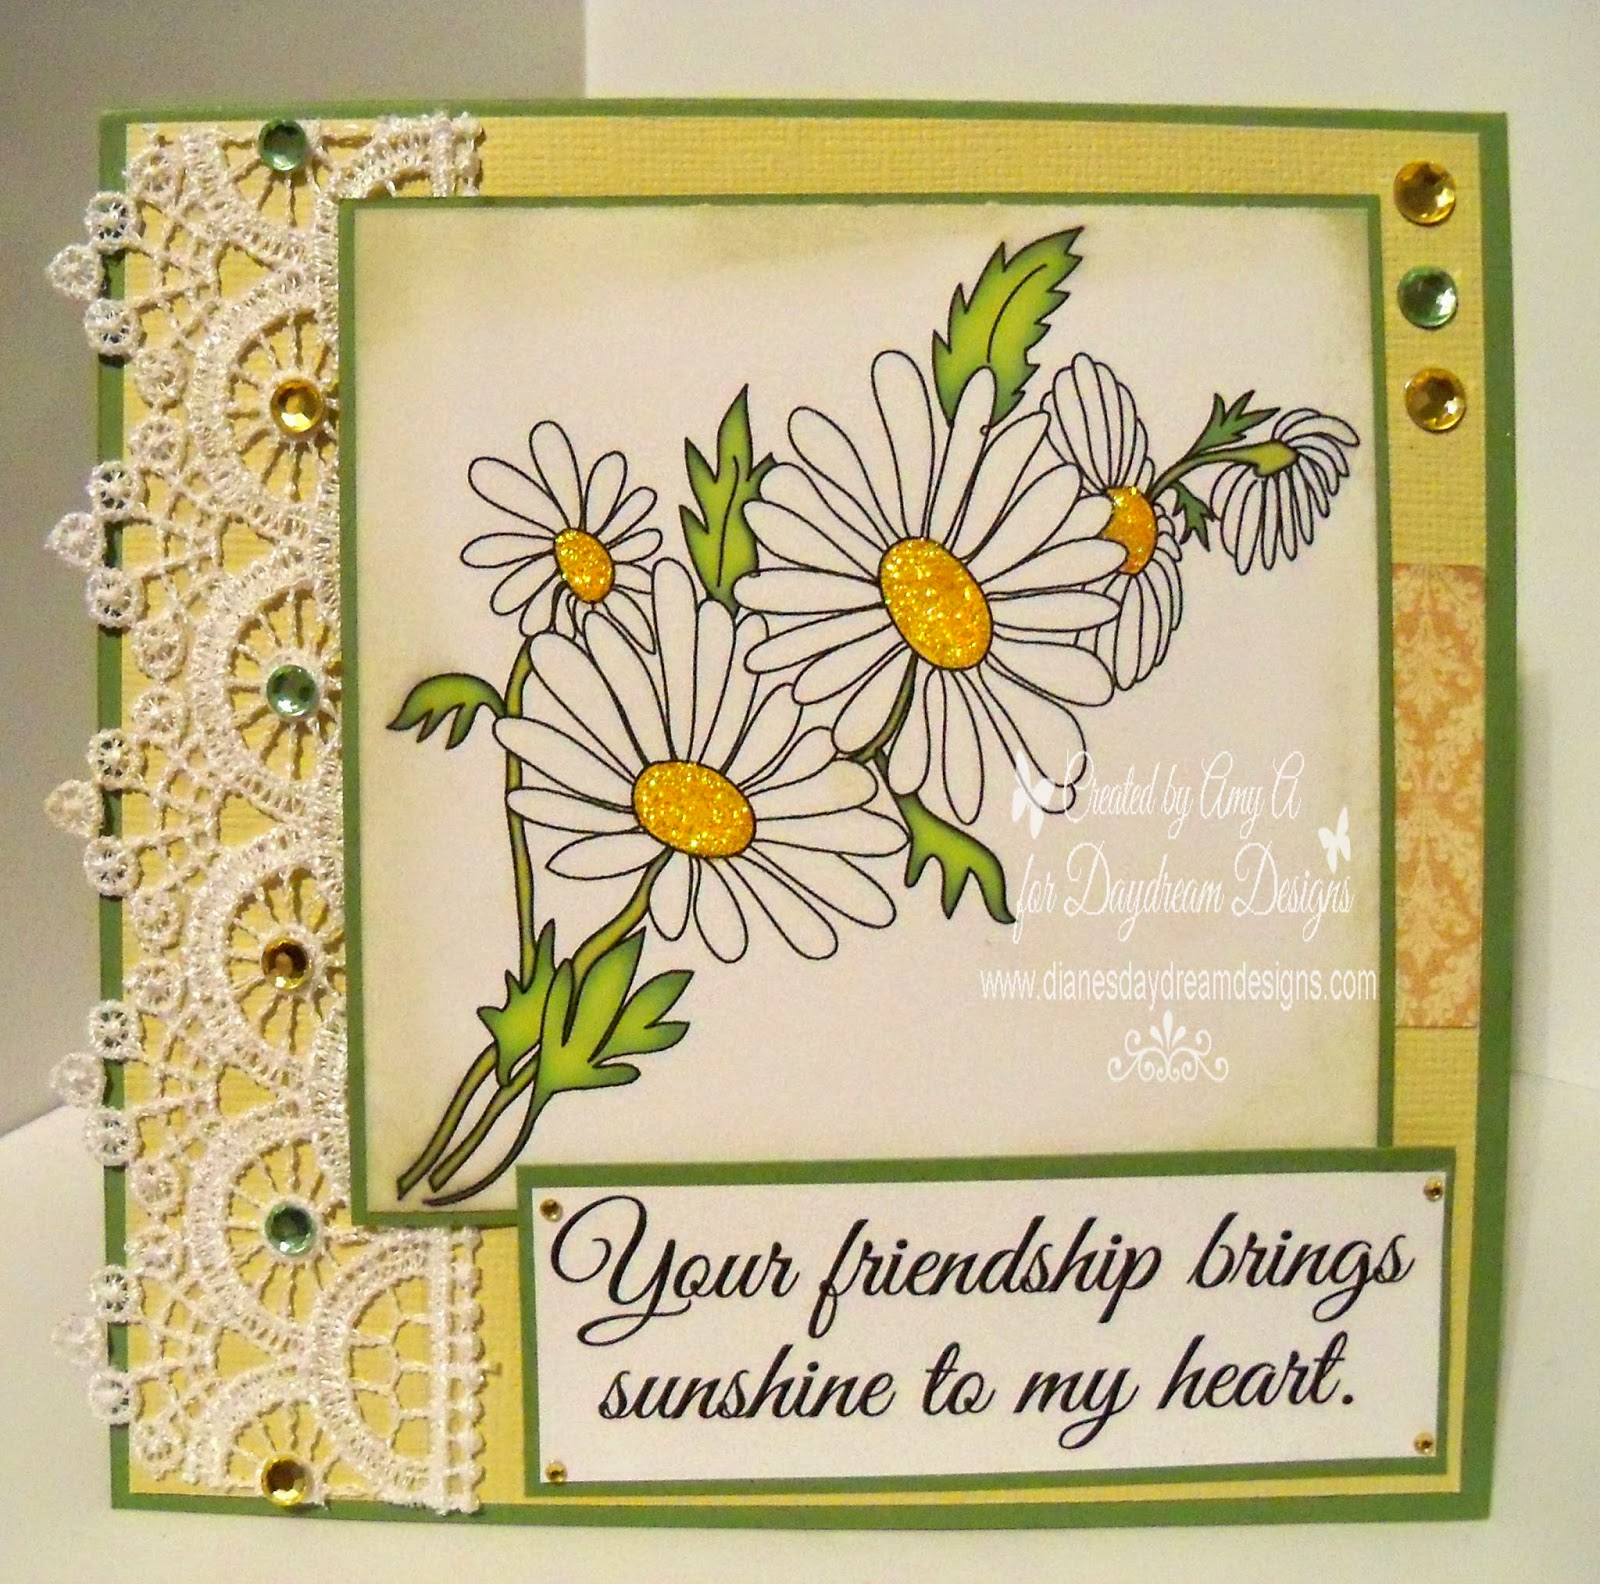 http://www.dianesdaydreamdesigns.com/store/p936/DD-Bouquet_of_Daisies.html